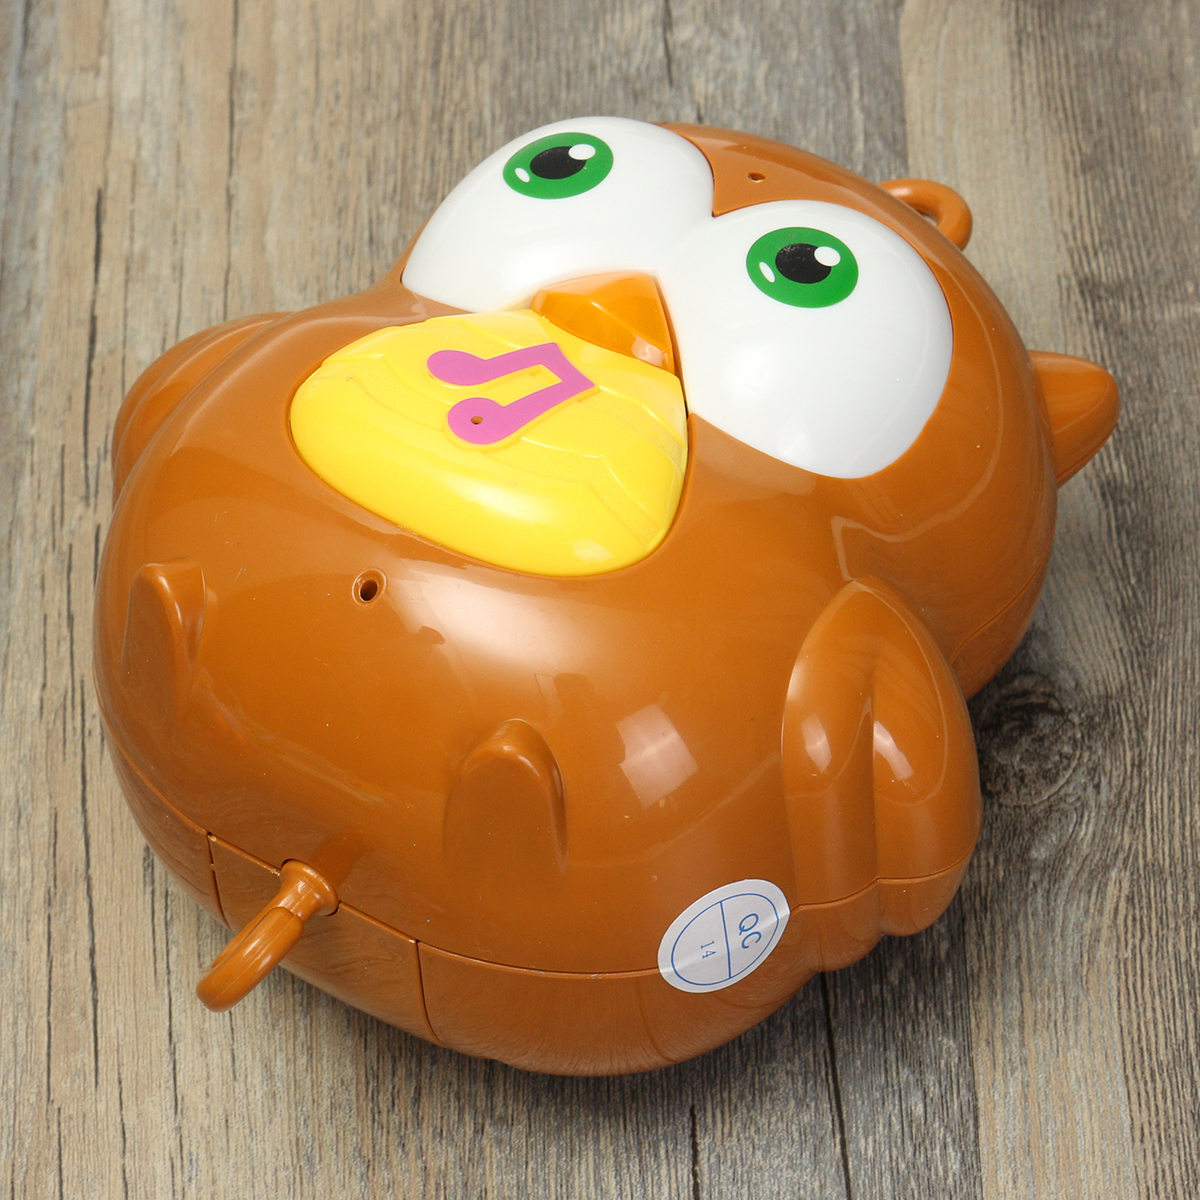 Baby Mobile Crib Melodies Song Bed Bell Kid Toy Electric Music Box Love Soft Colorful Plush Dolls Toys